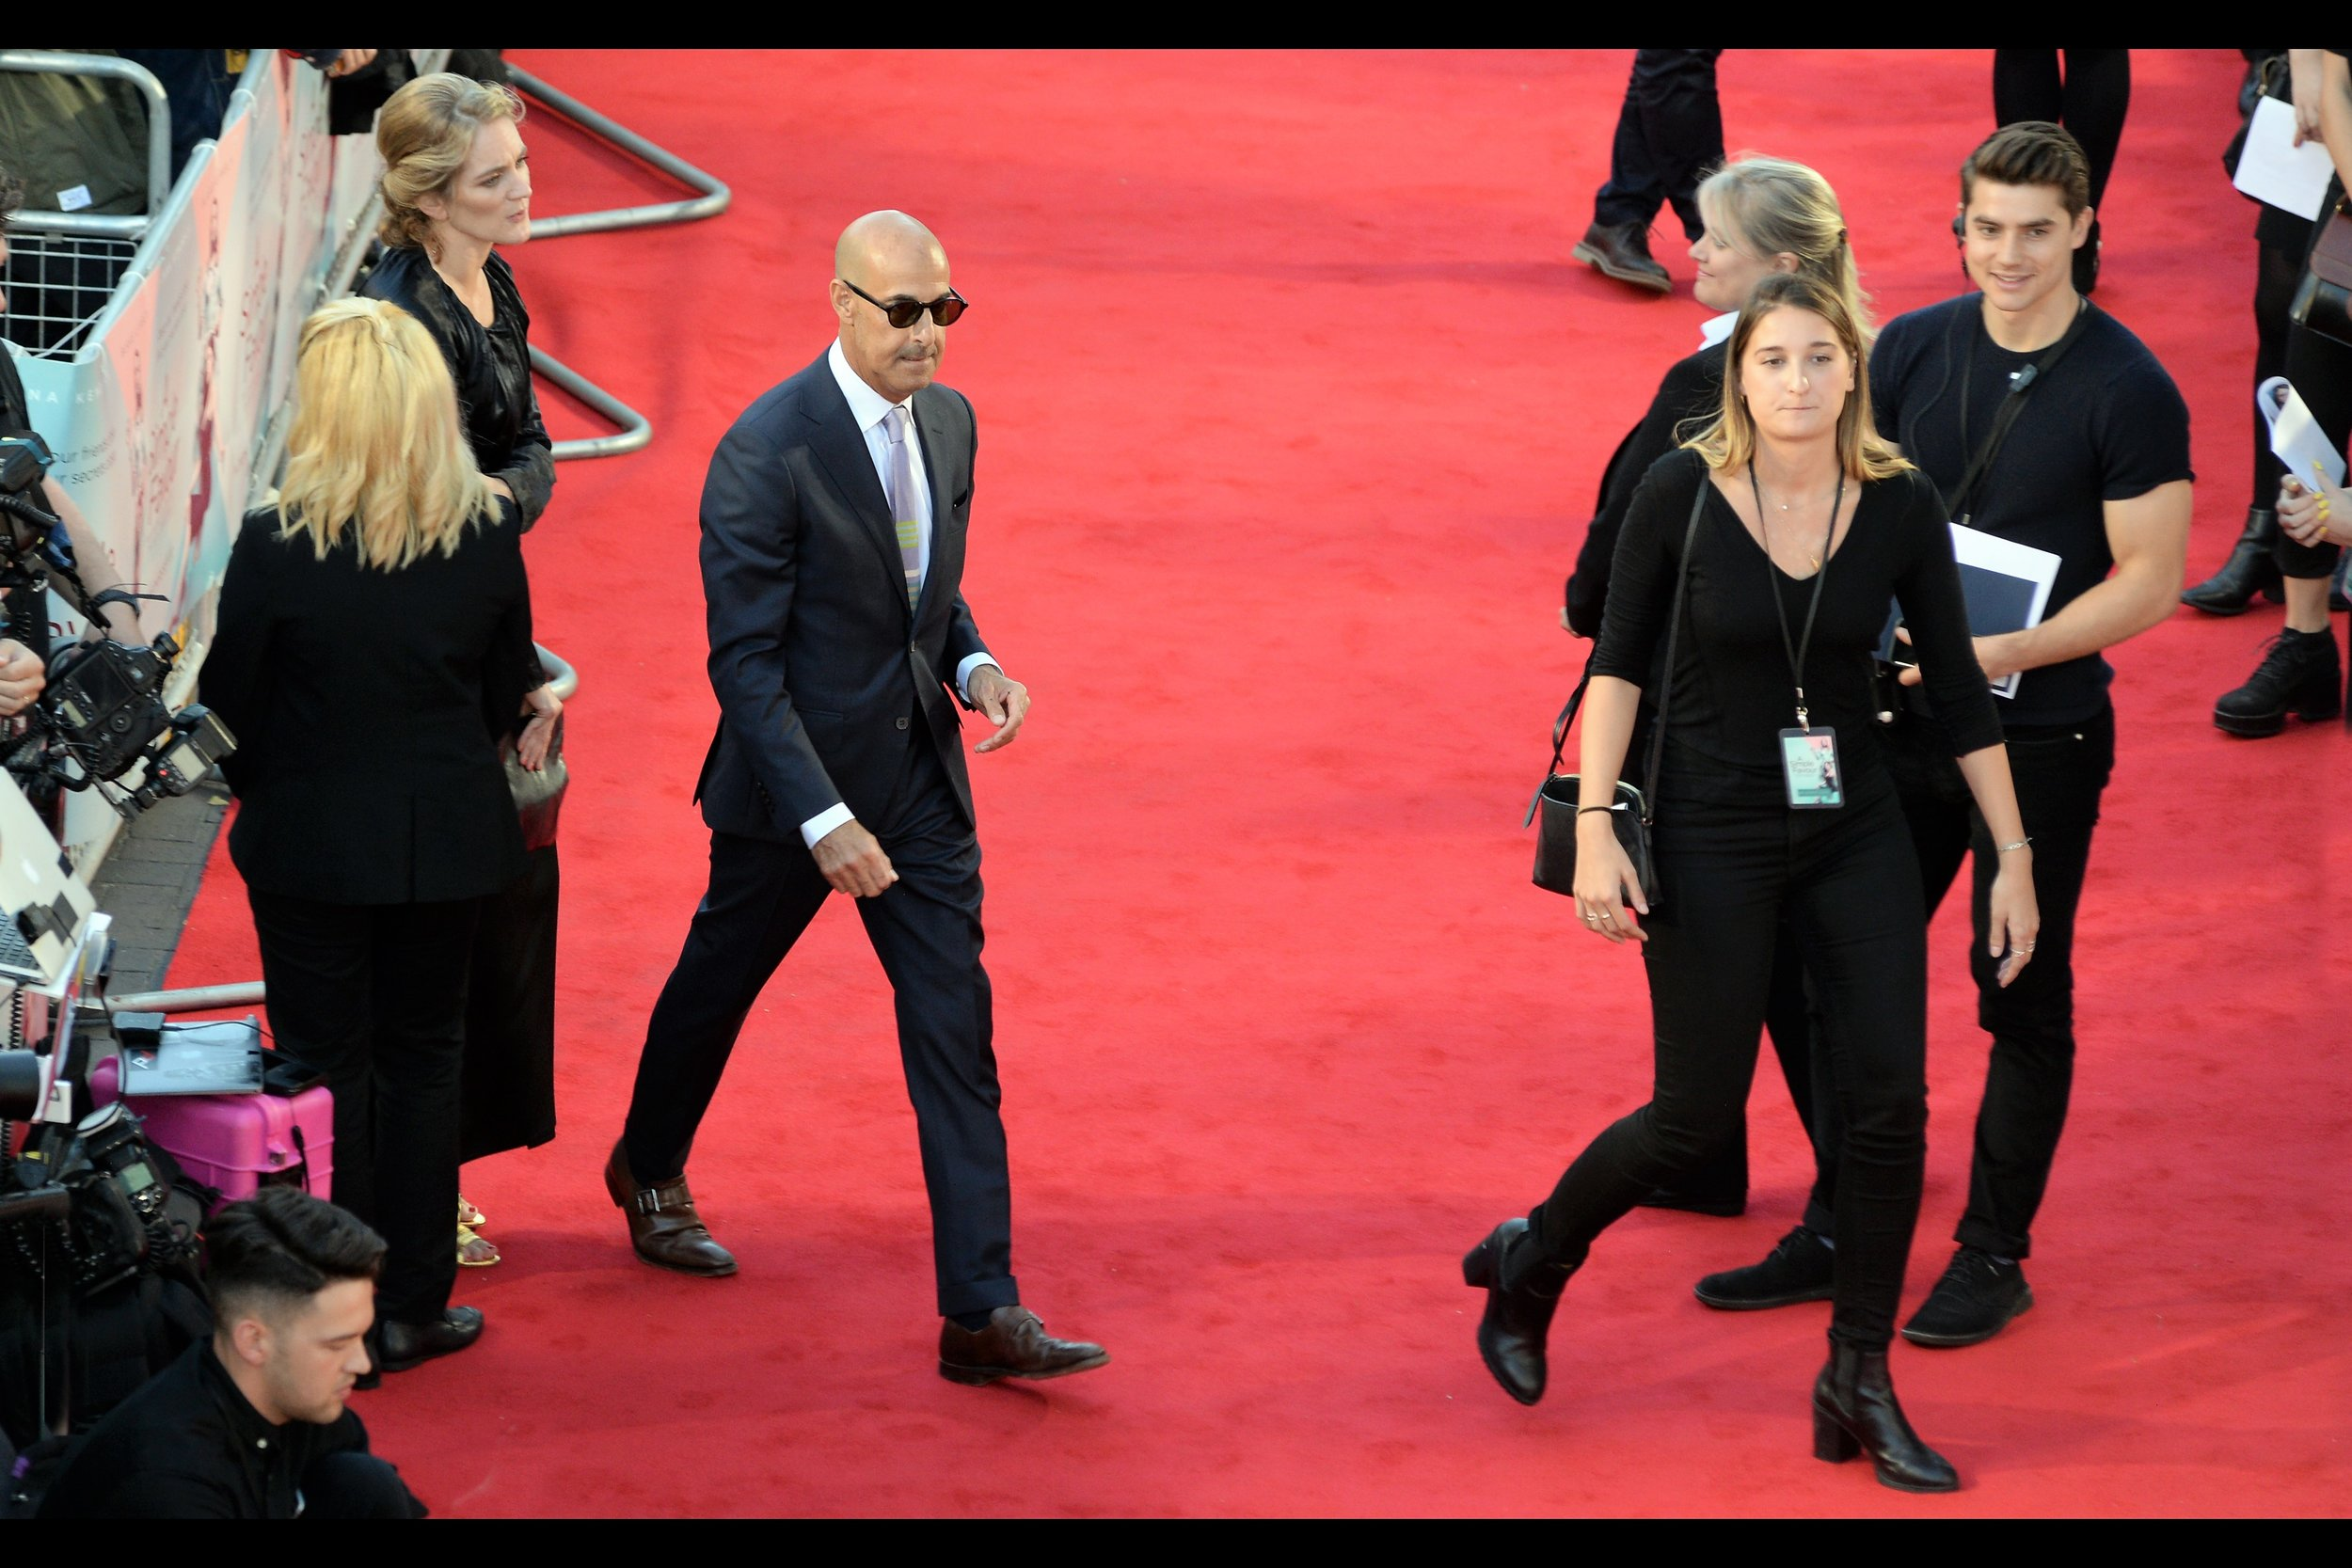 """""""Honestly? The day I need somebody to tell me how great I look is the day I know it's a lie.""""  - Actor Stanley Tucci."""